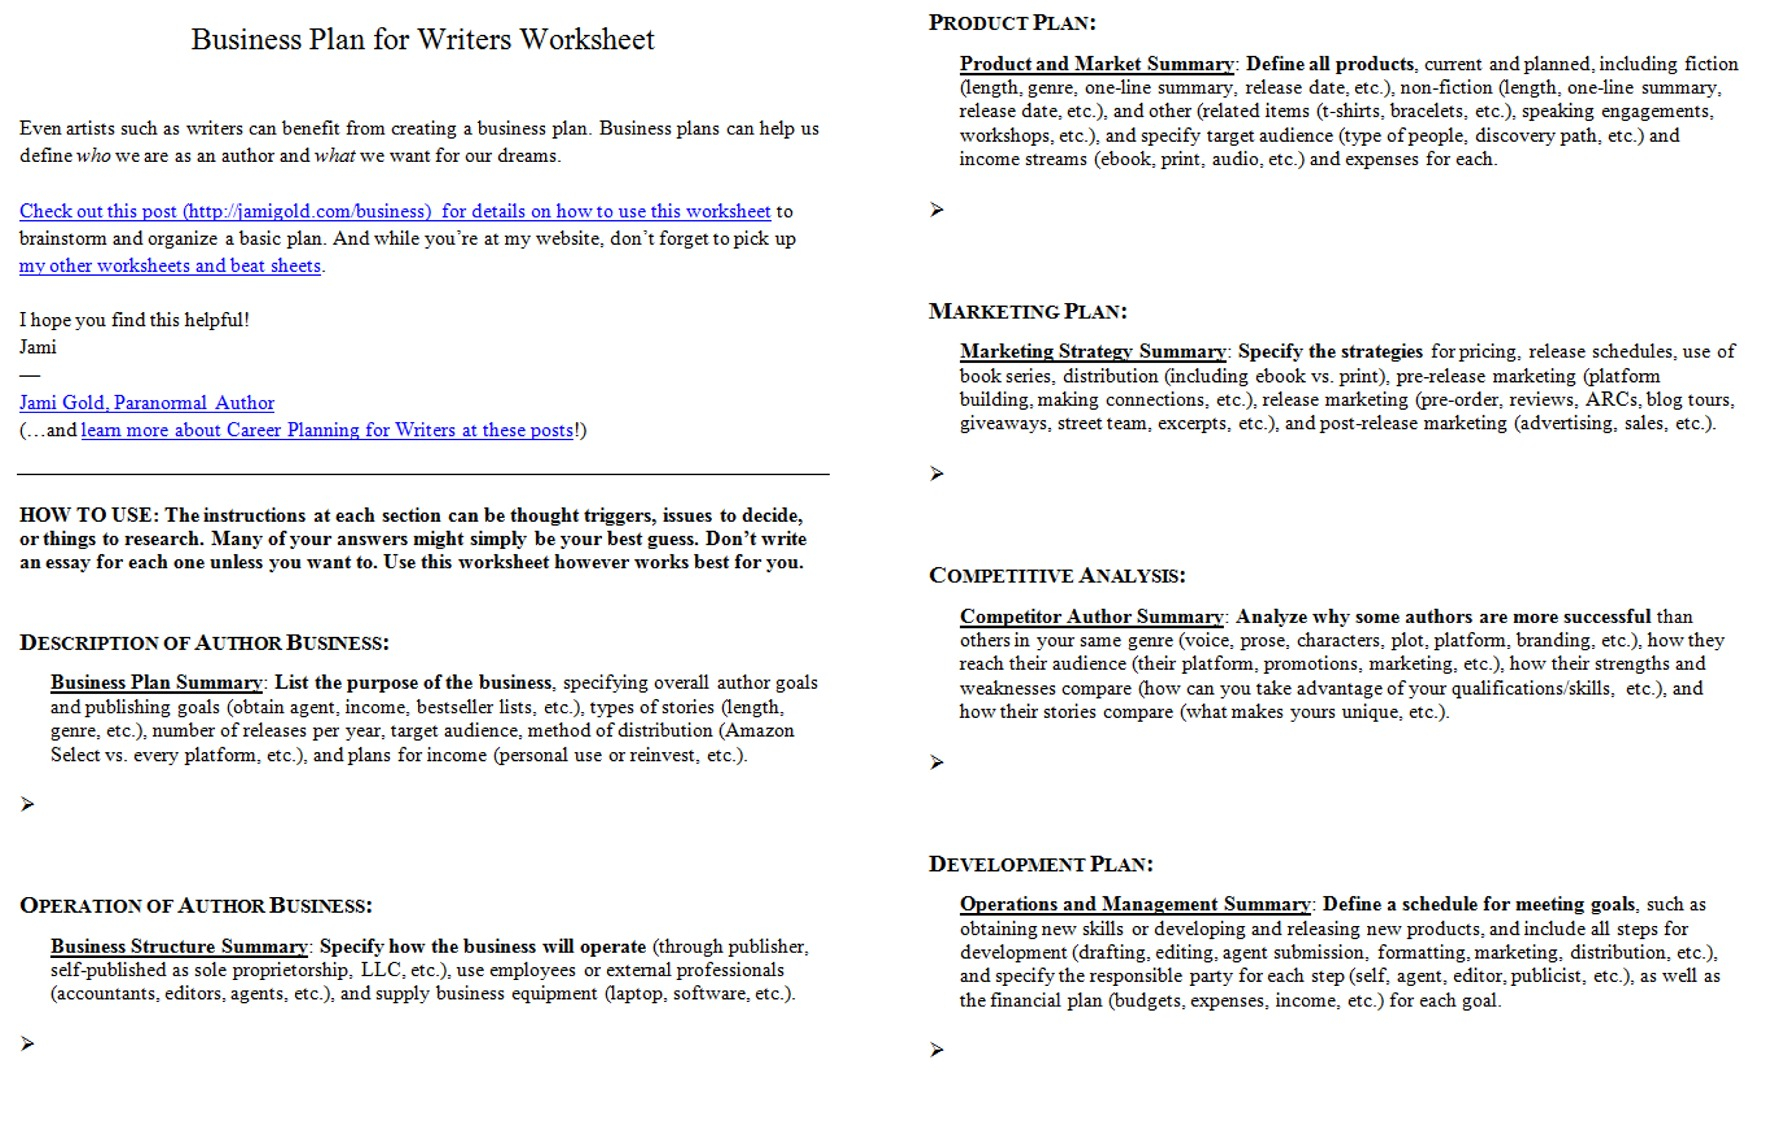 Weirdmailus  Unique Worksheets For Writers  Jami Gold Paranormal Author With Outstanding Screen Shot Of Both Pages Of The Business Plan For Writers Worksheet With Divine First Grade Vowel Worksheets Also Alliteration Worksheets For High School In Addition School Subjects Worksheets And Count By Numbers Worksheets As Well As Ks Punctuation Worksheets Additionally Worksheets For Conjunctions From Jamigoldcom With Weirdmailus  Outstanding Worksheets For Writers  Jami Gold Paranormal Author With Divine Screen Shot Of Both Pages Of The Business Plan For Writers Worksheet And Unique First Grade Vowel Worksheets Also Alliteration Worksheets For High School In Addition School Subjects Worksheets From Jamigoldcom